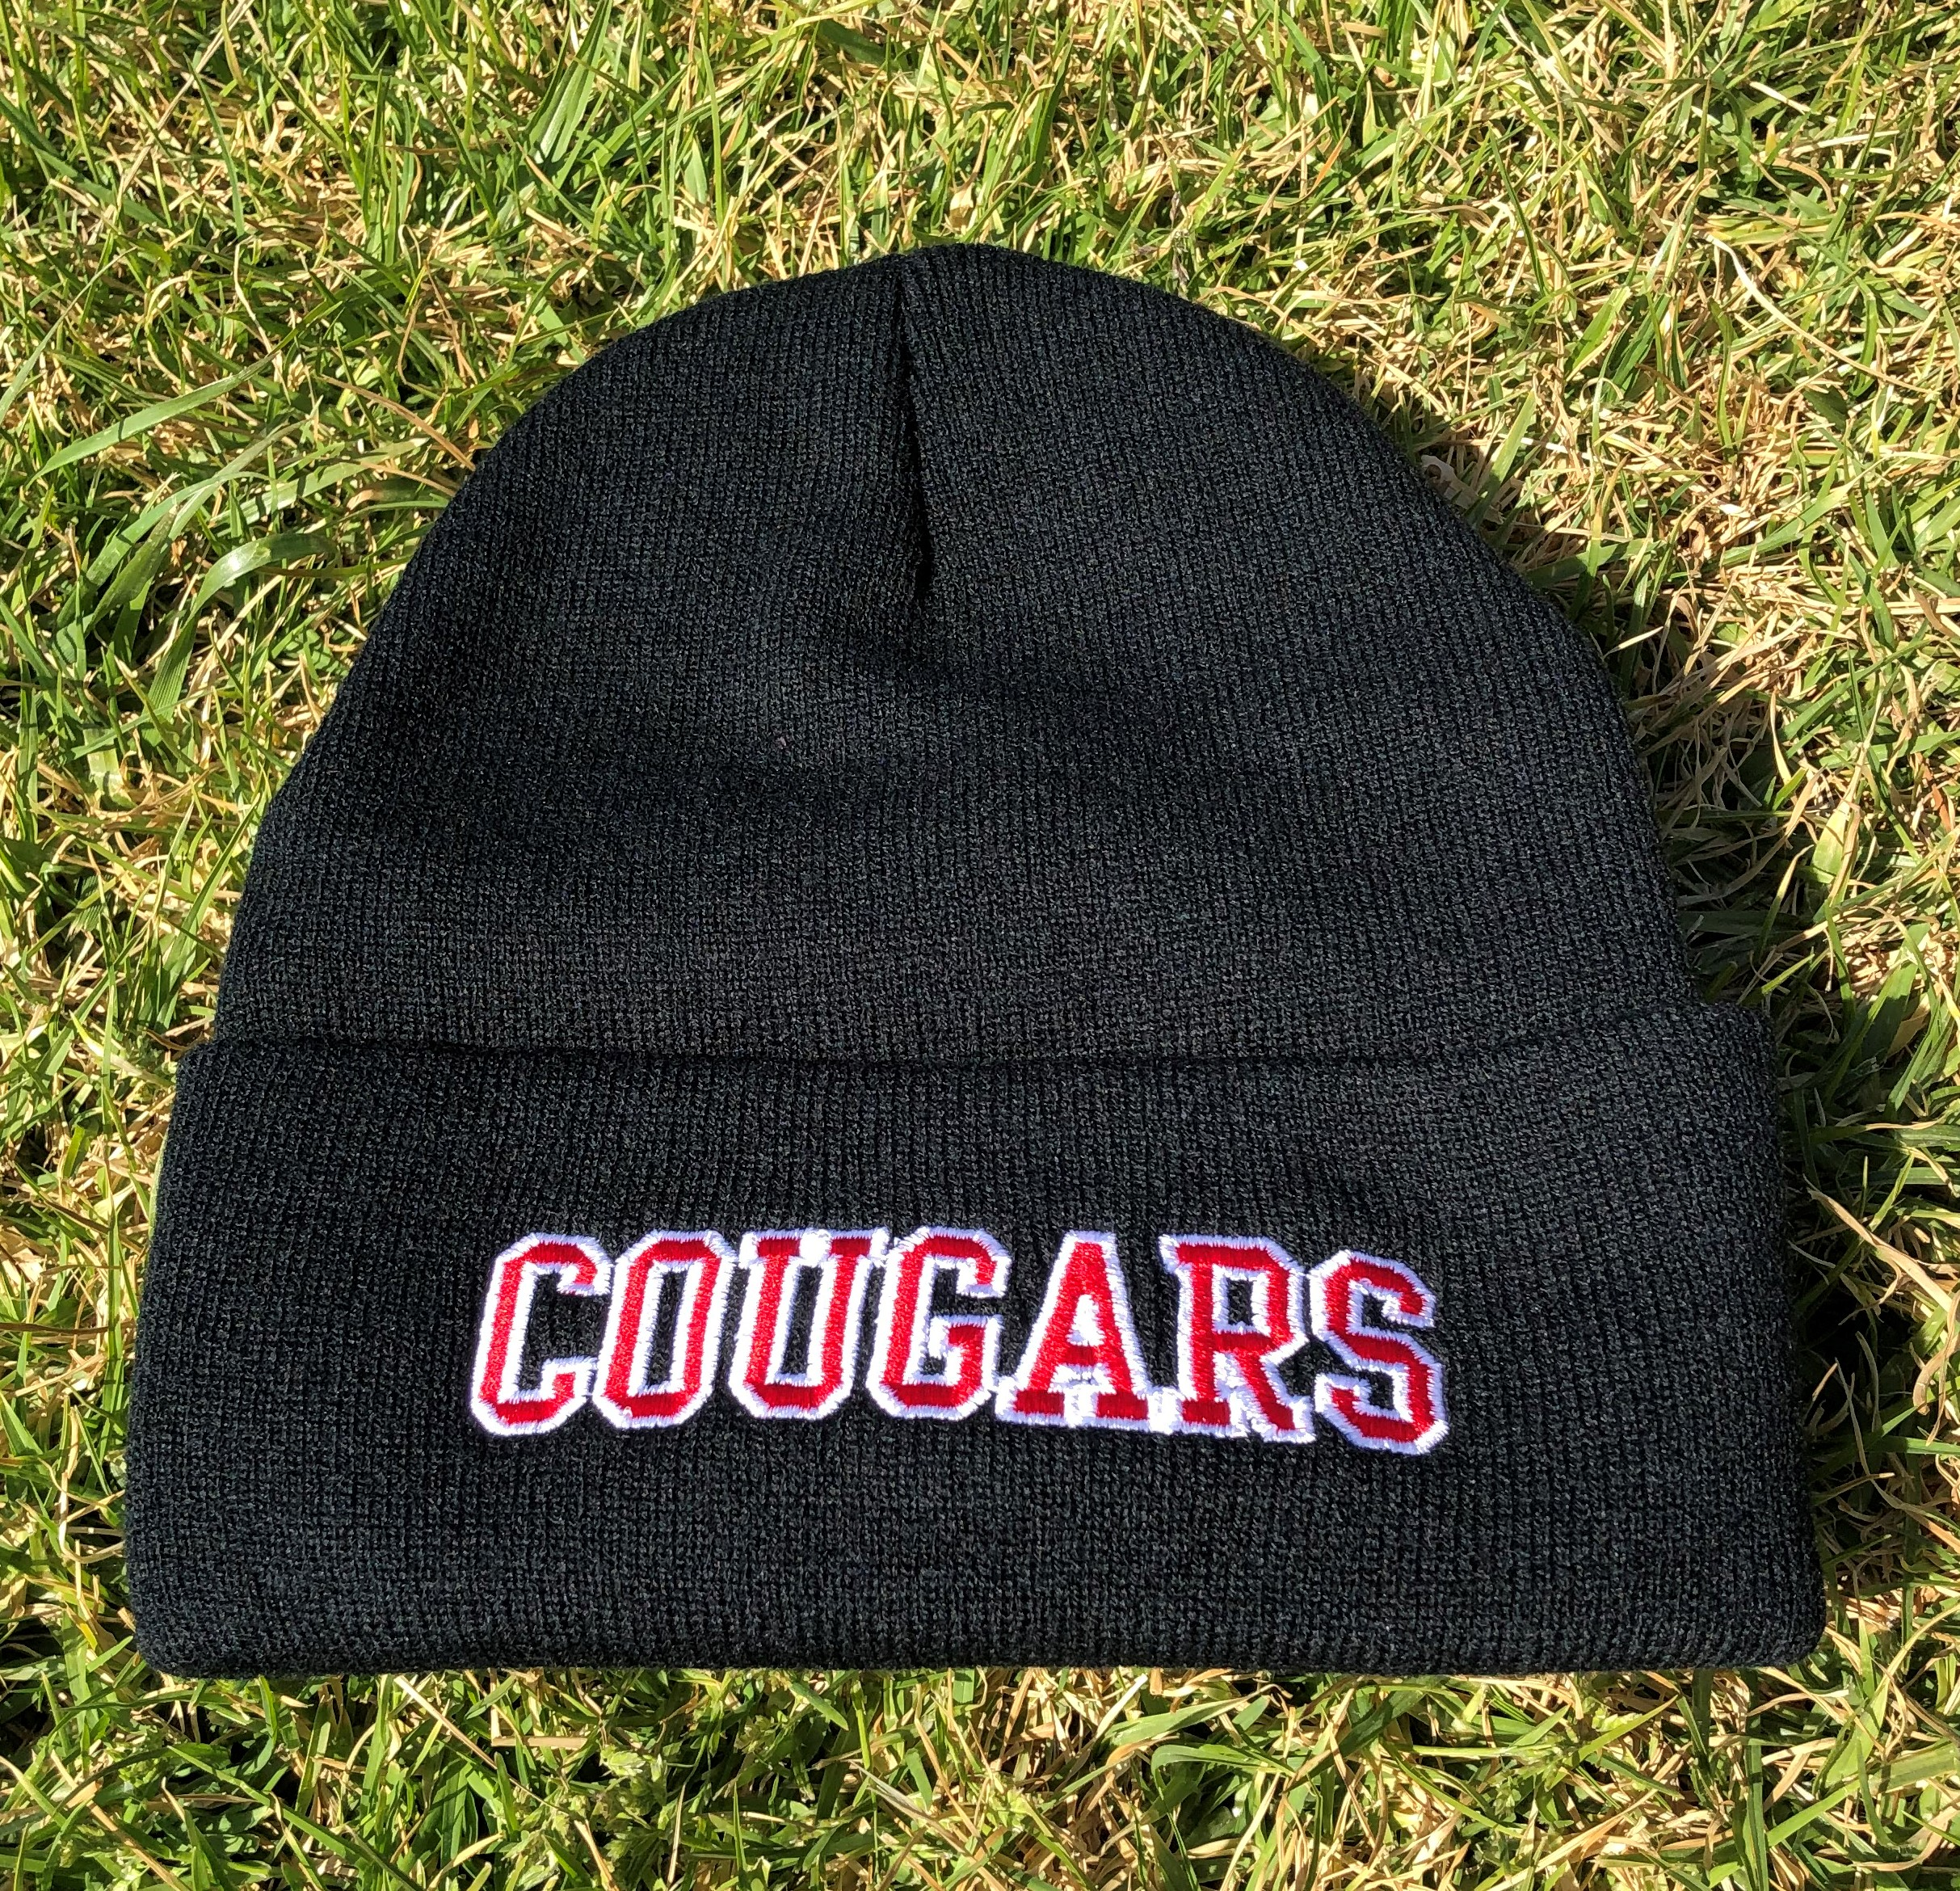 Black Knit cap with